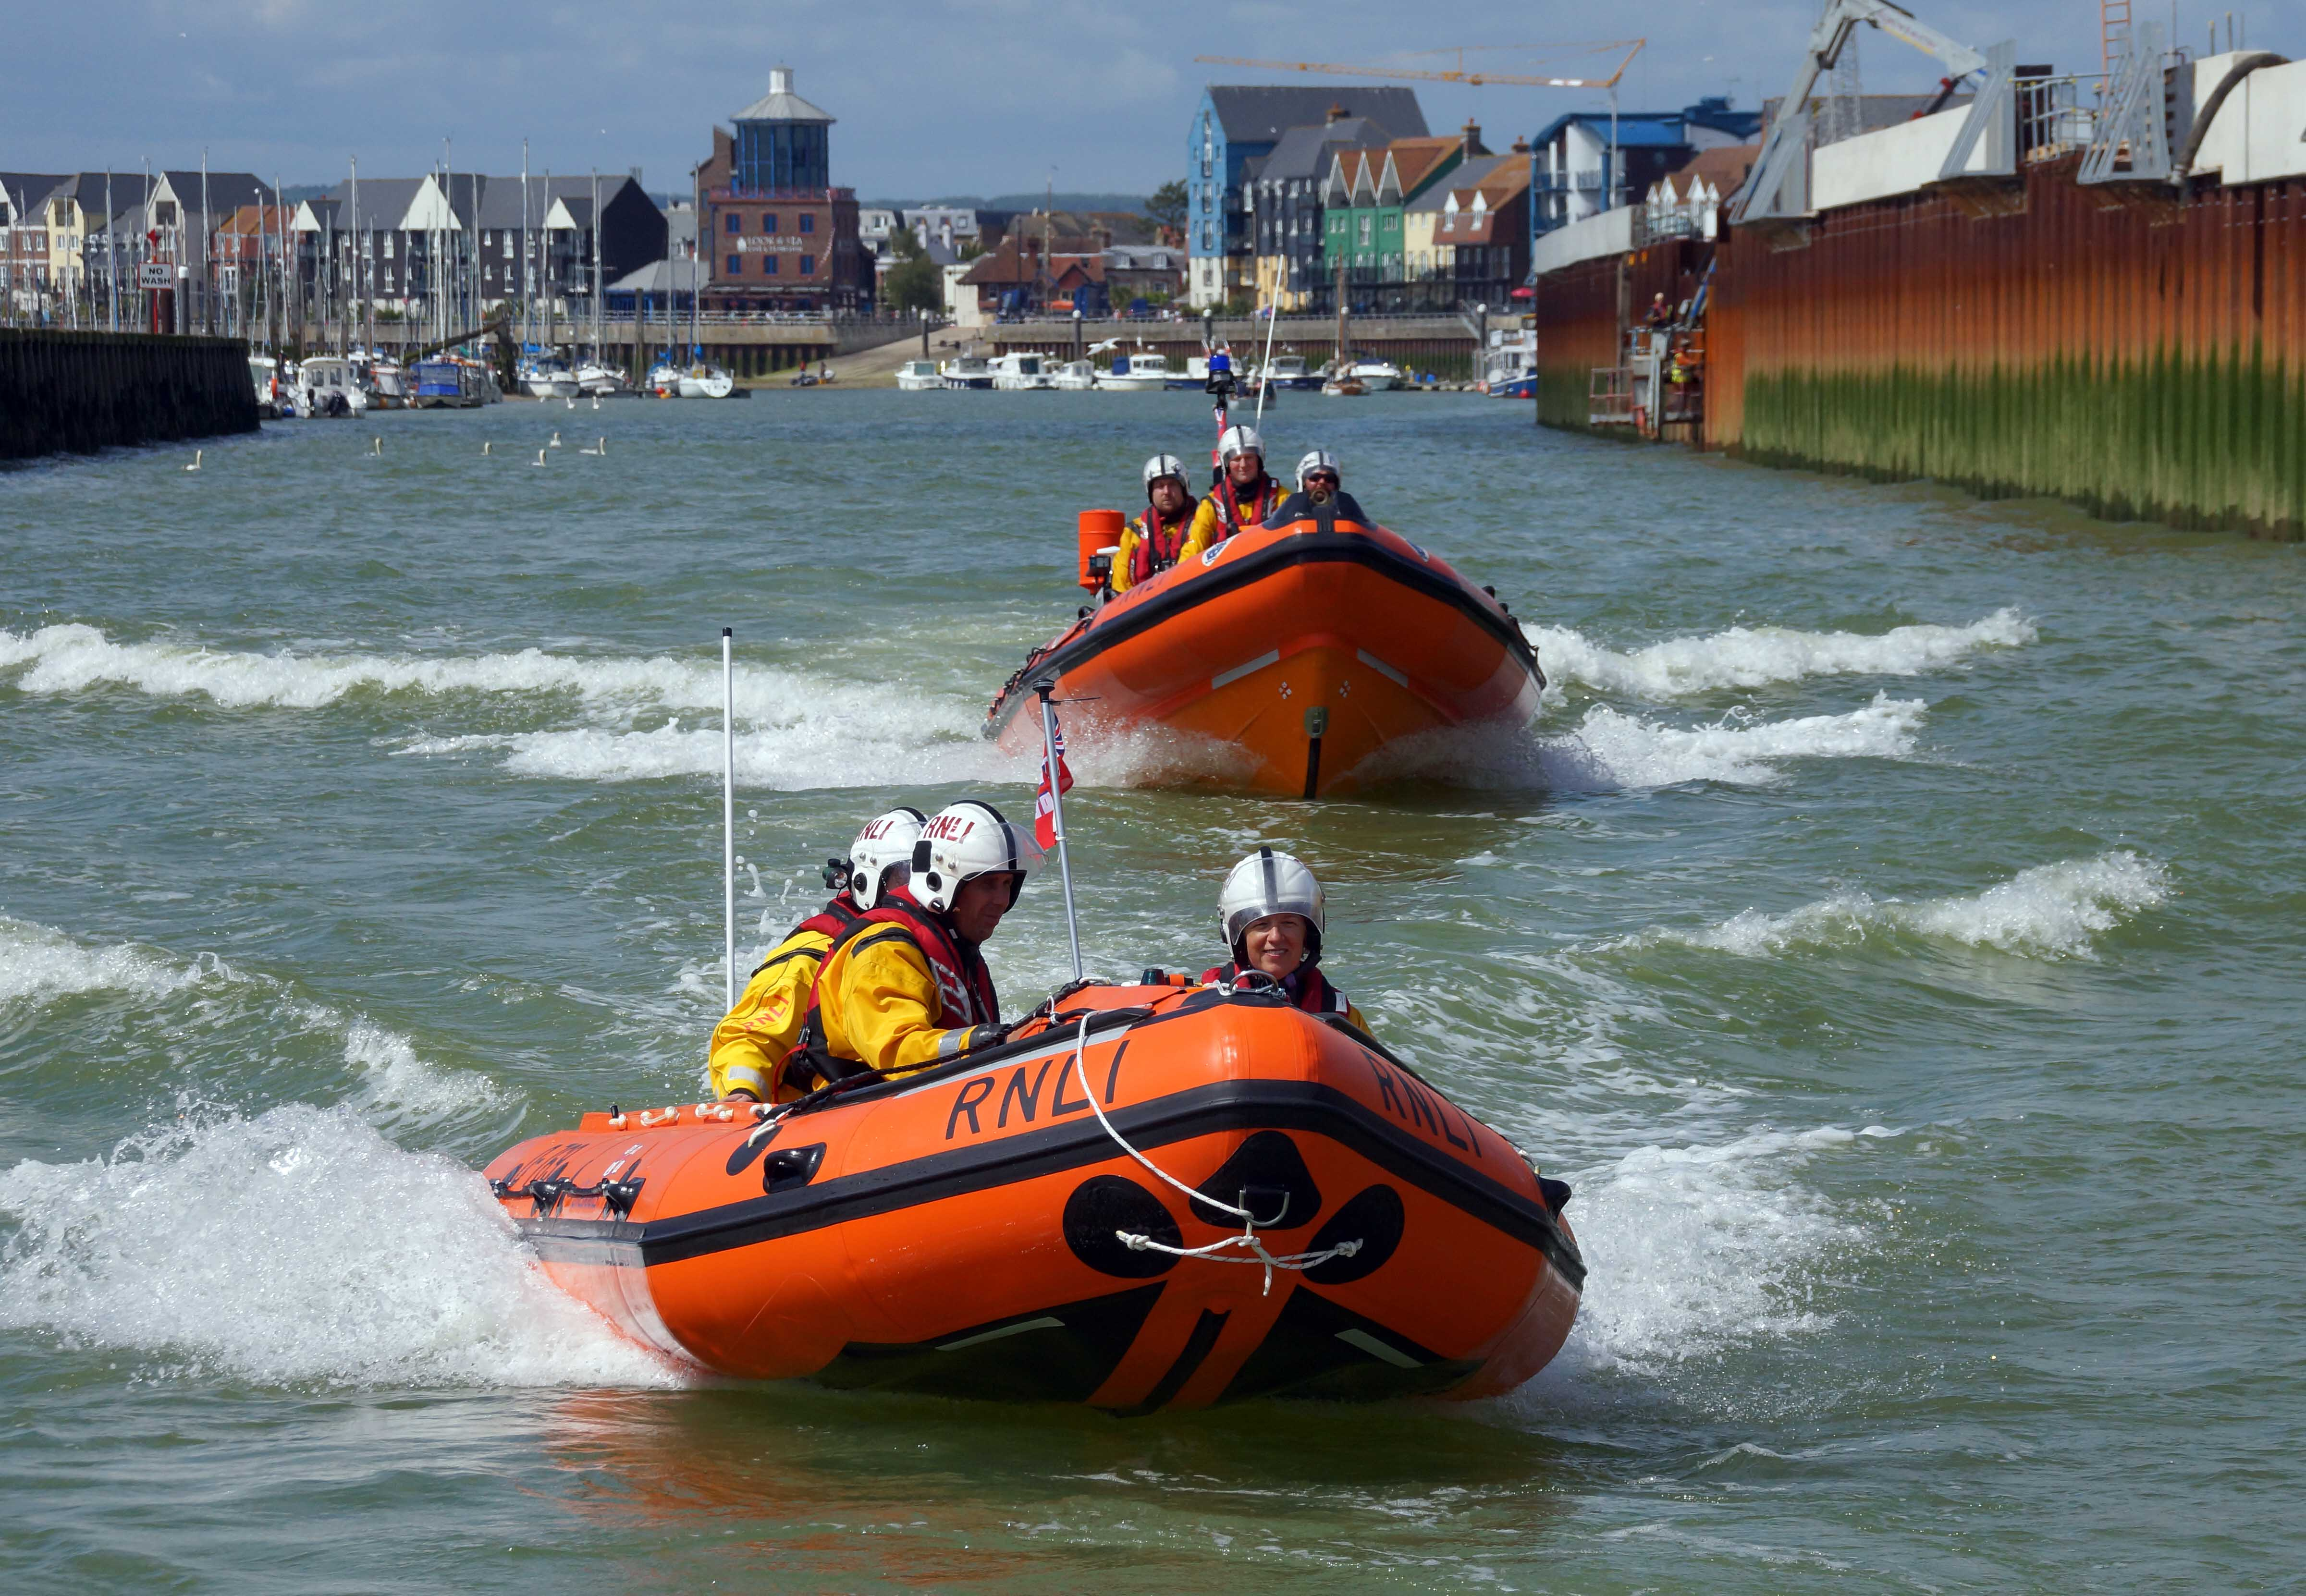 Both lifeboats heading out to the reported incident